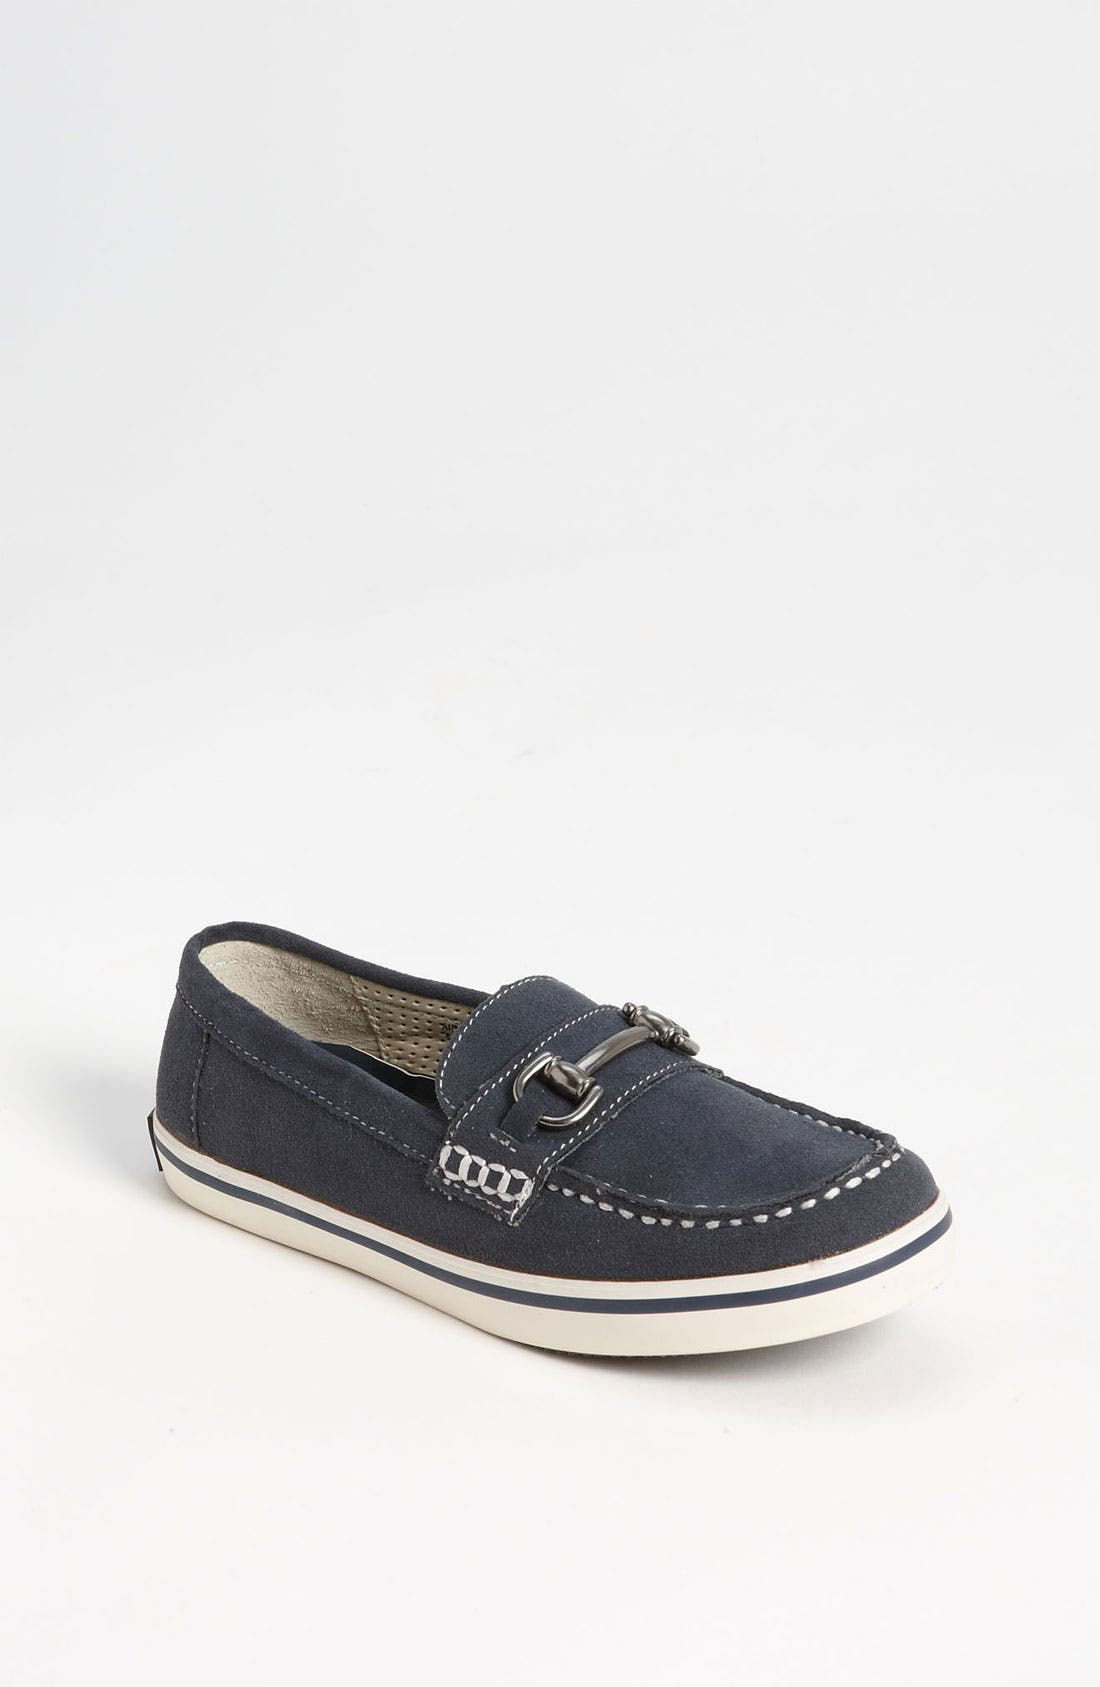 Alternate Image 1 Selected - Cole Haan 'Air Cory' Slip-On (Toddler, Little Kid & Big Kid)